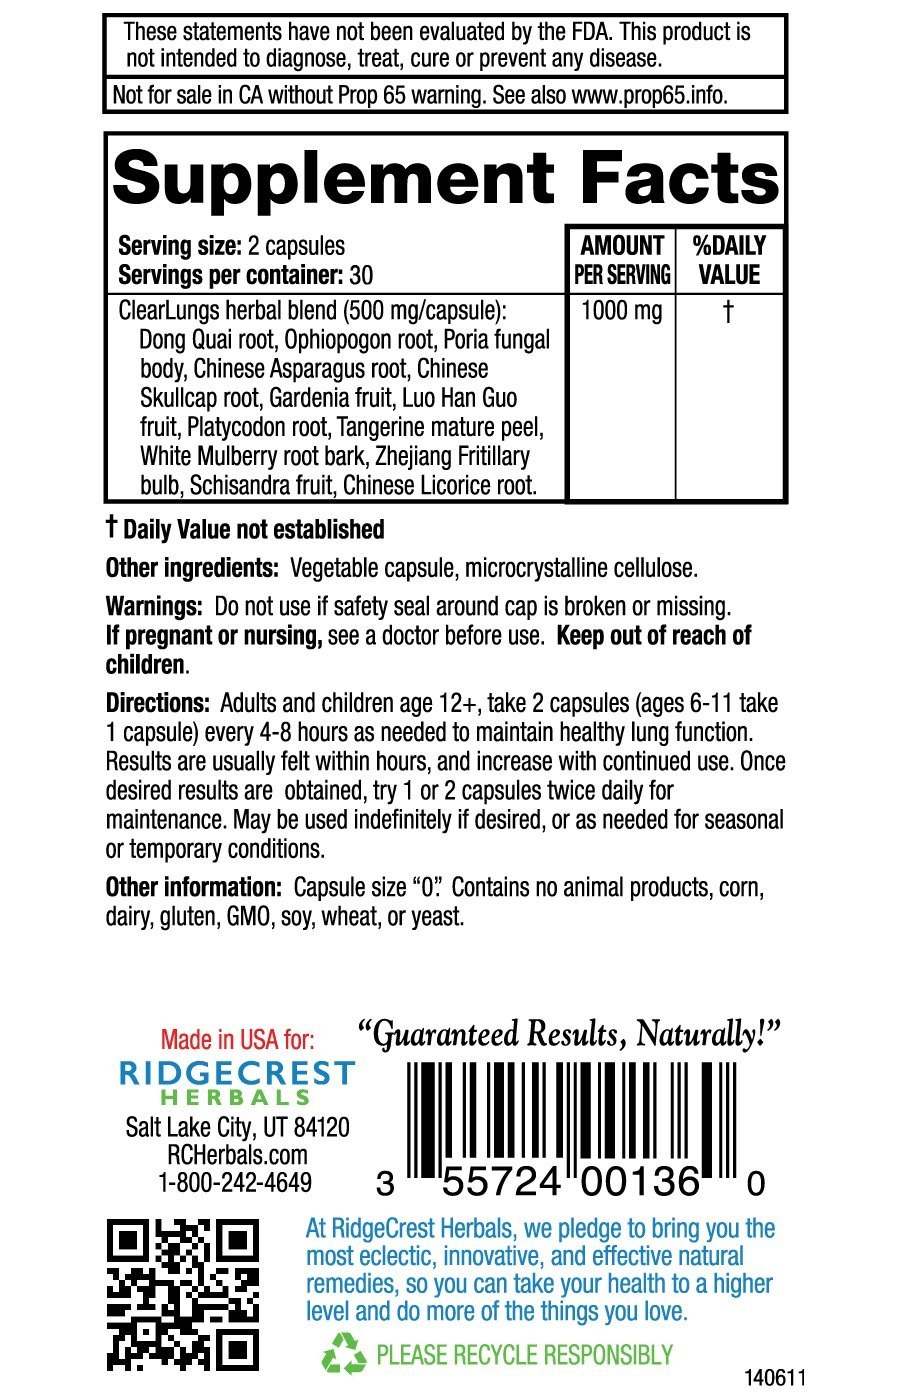 RidgeCrest Clearlungs (Red), Chinese Herbal Formula, 60 Vegetarian Capsules